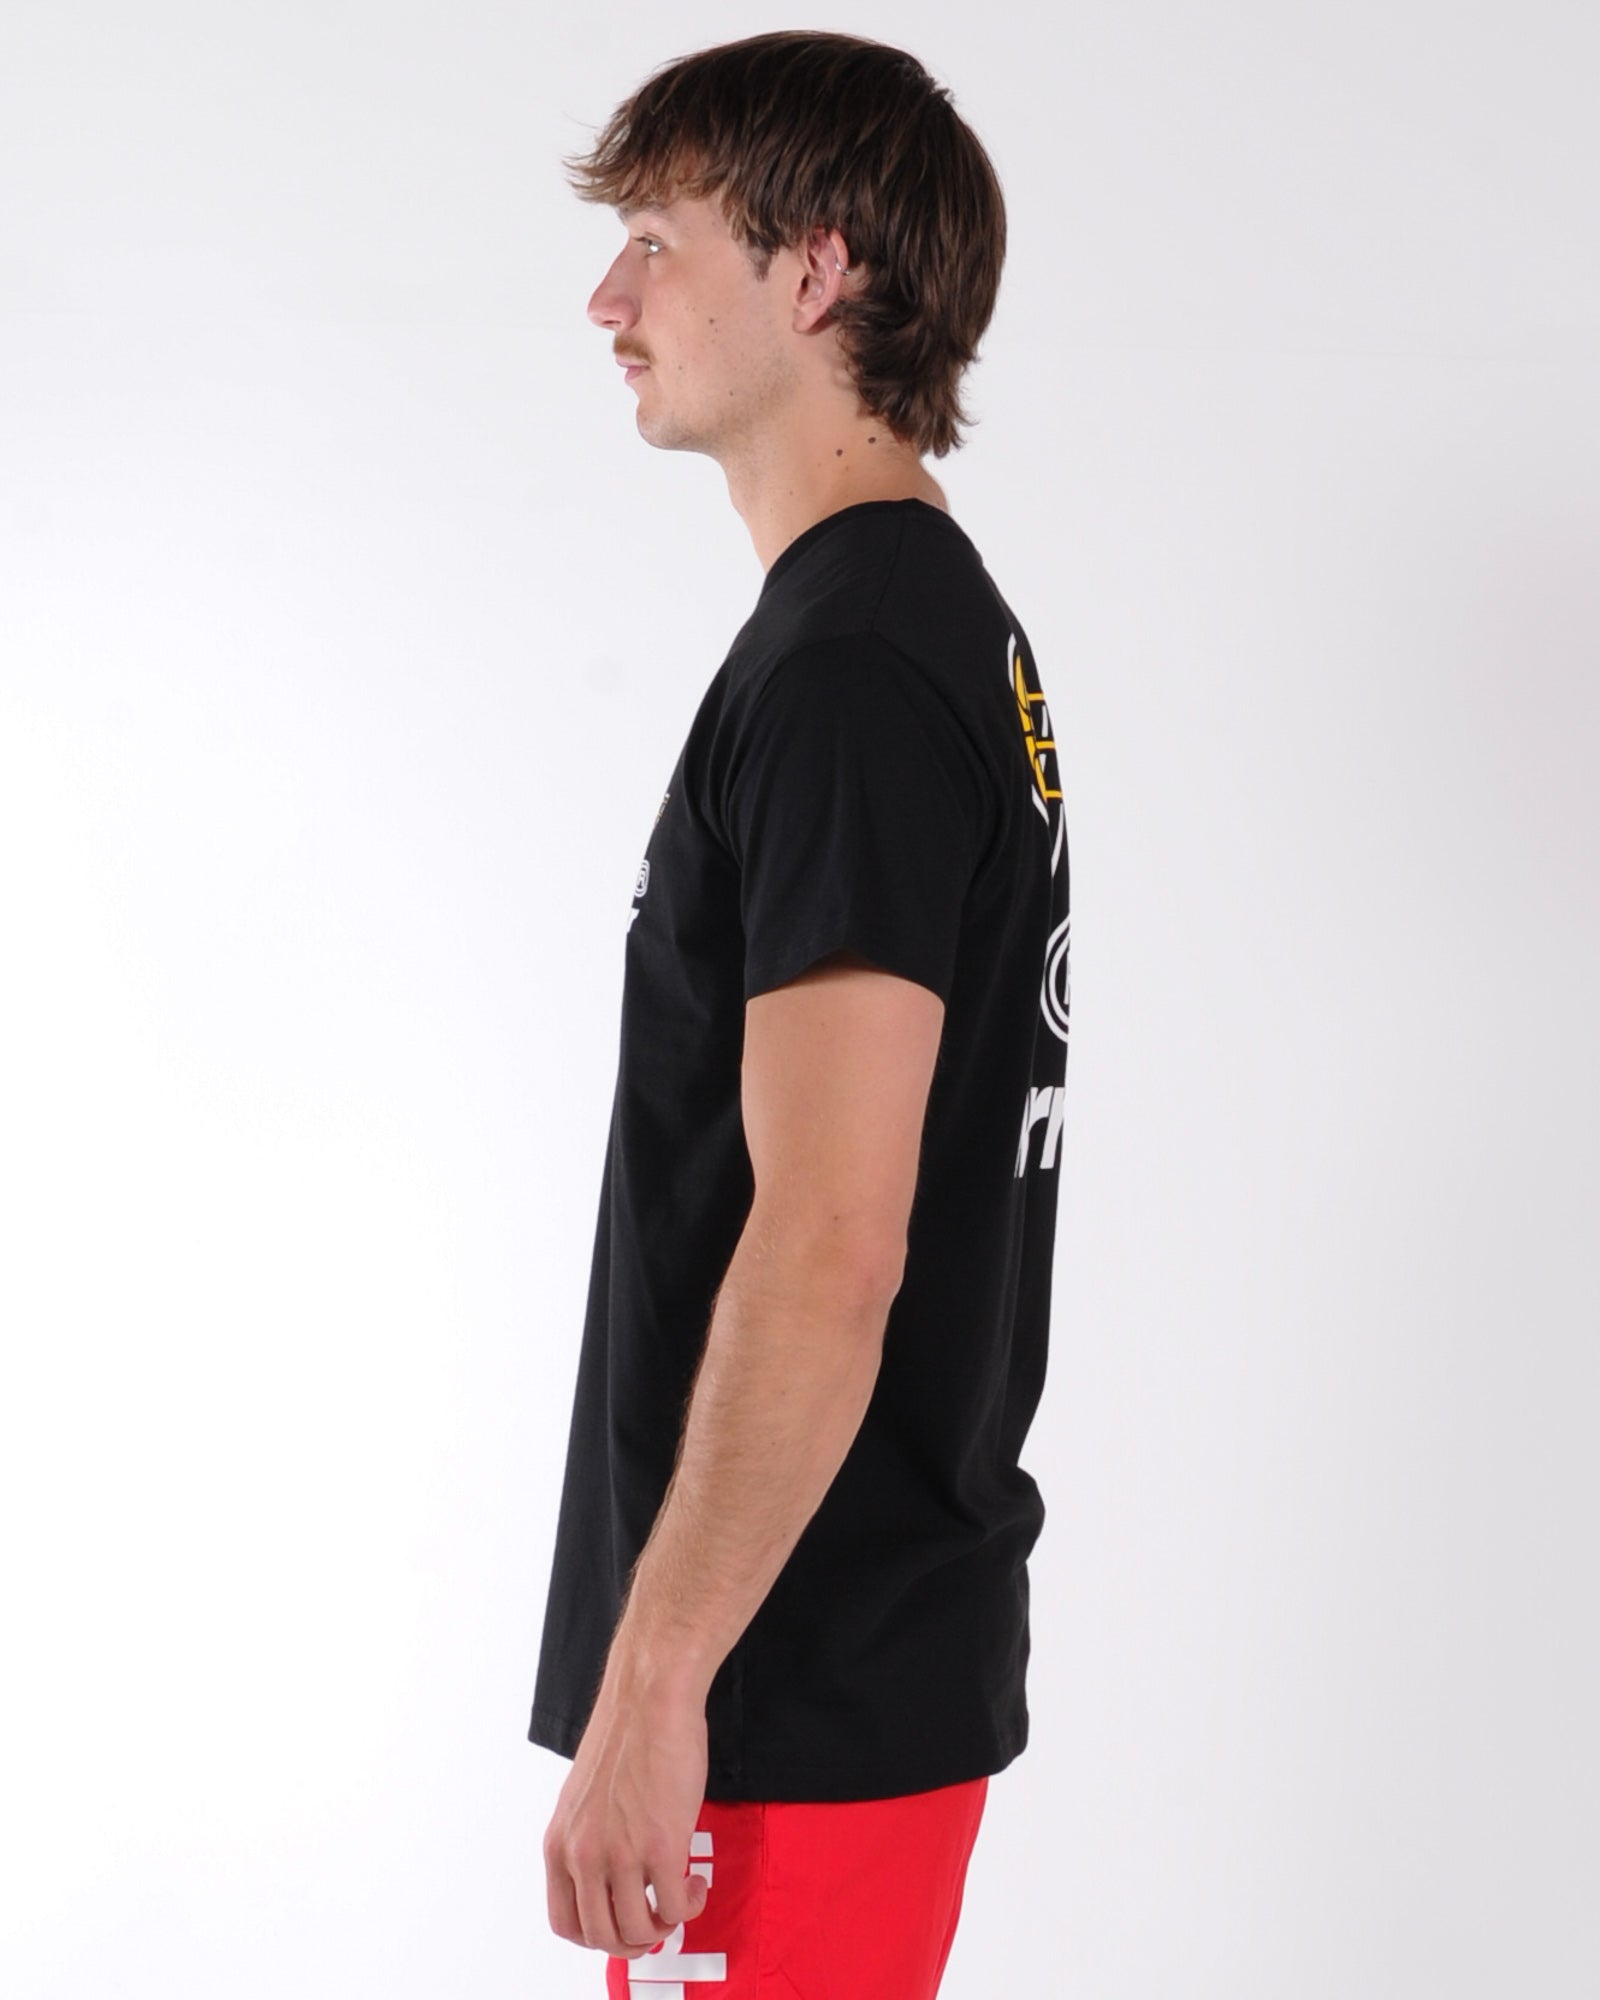 Wndrr In Bound Custom Fit Tee - Black